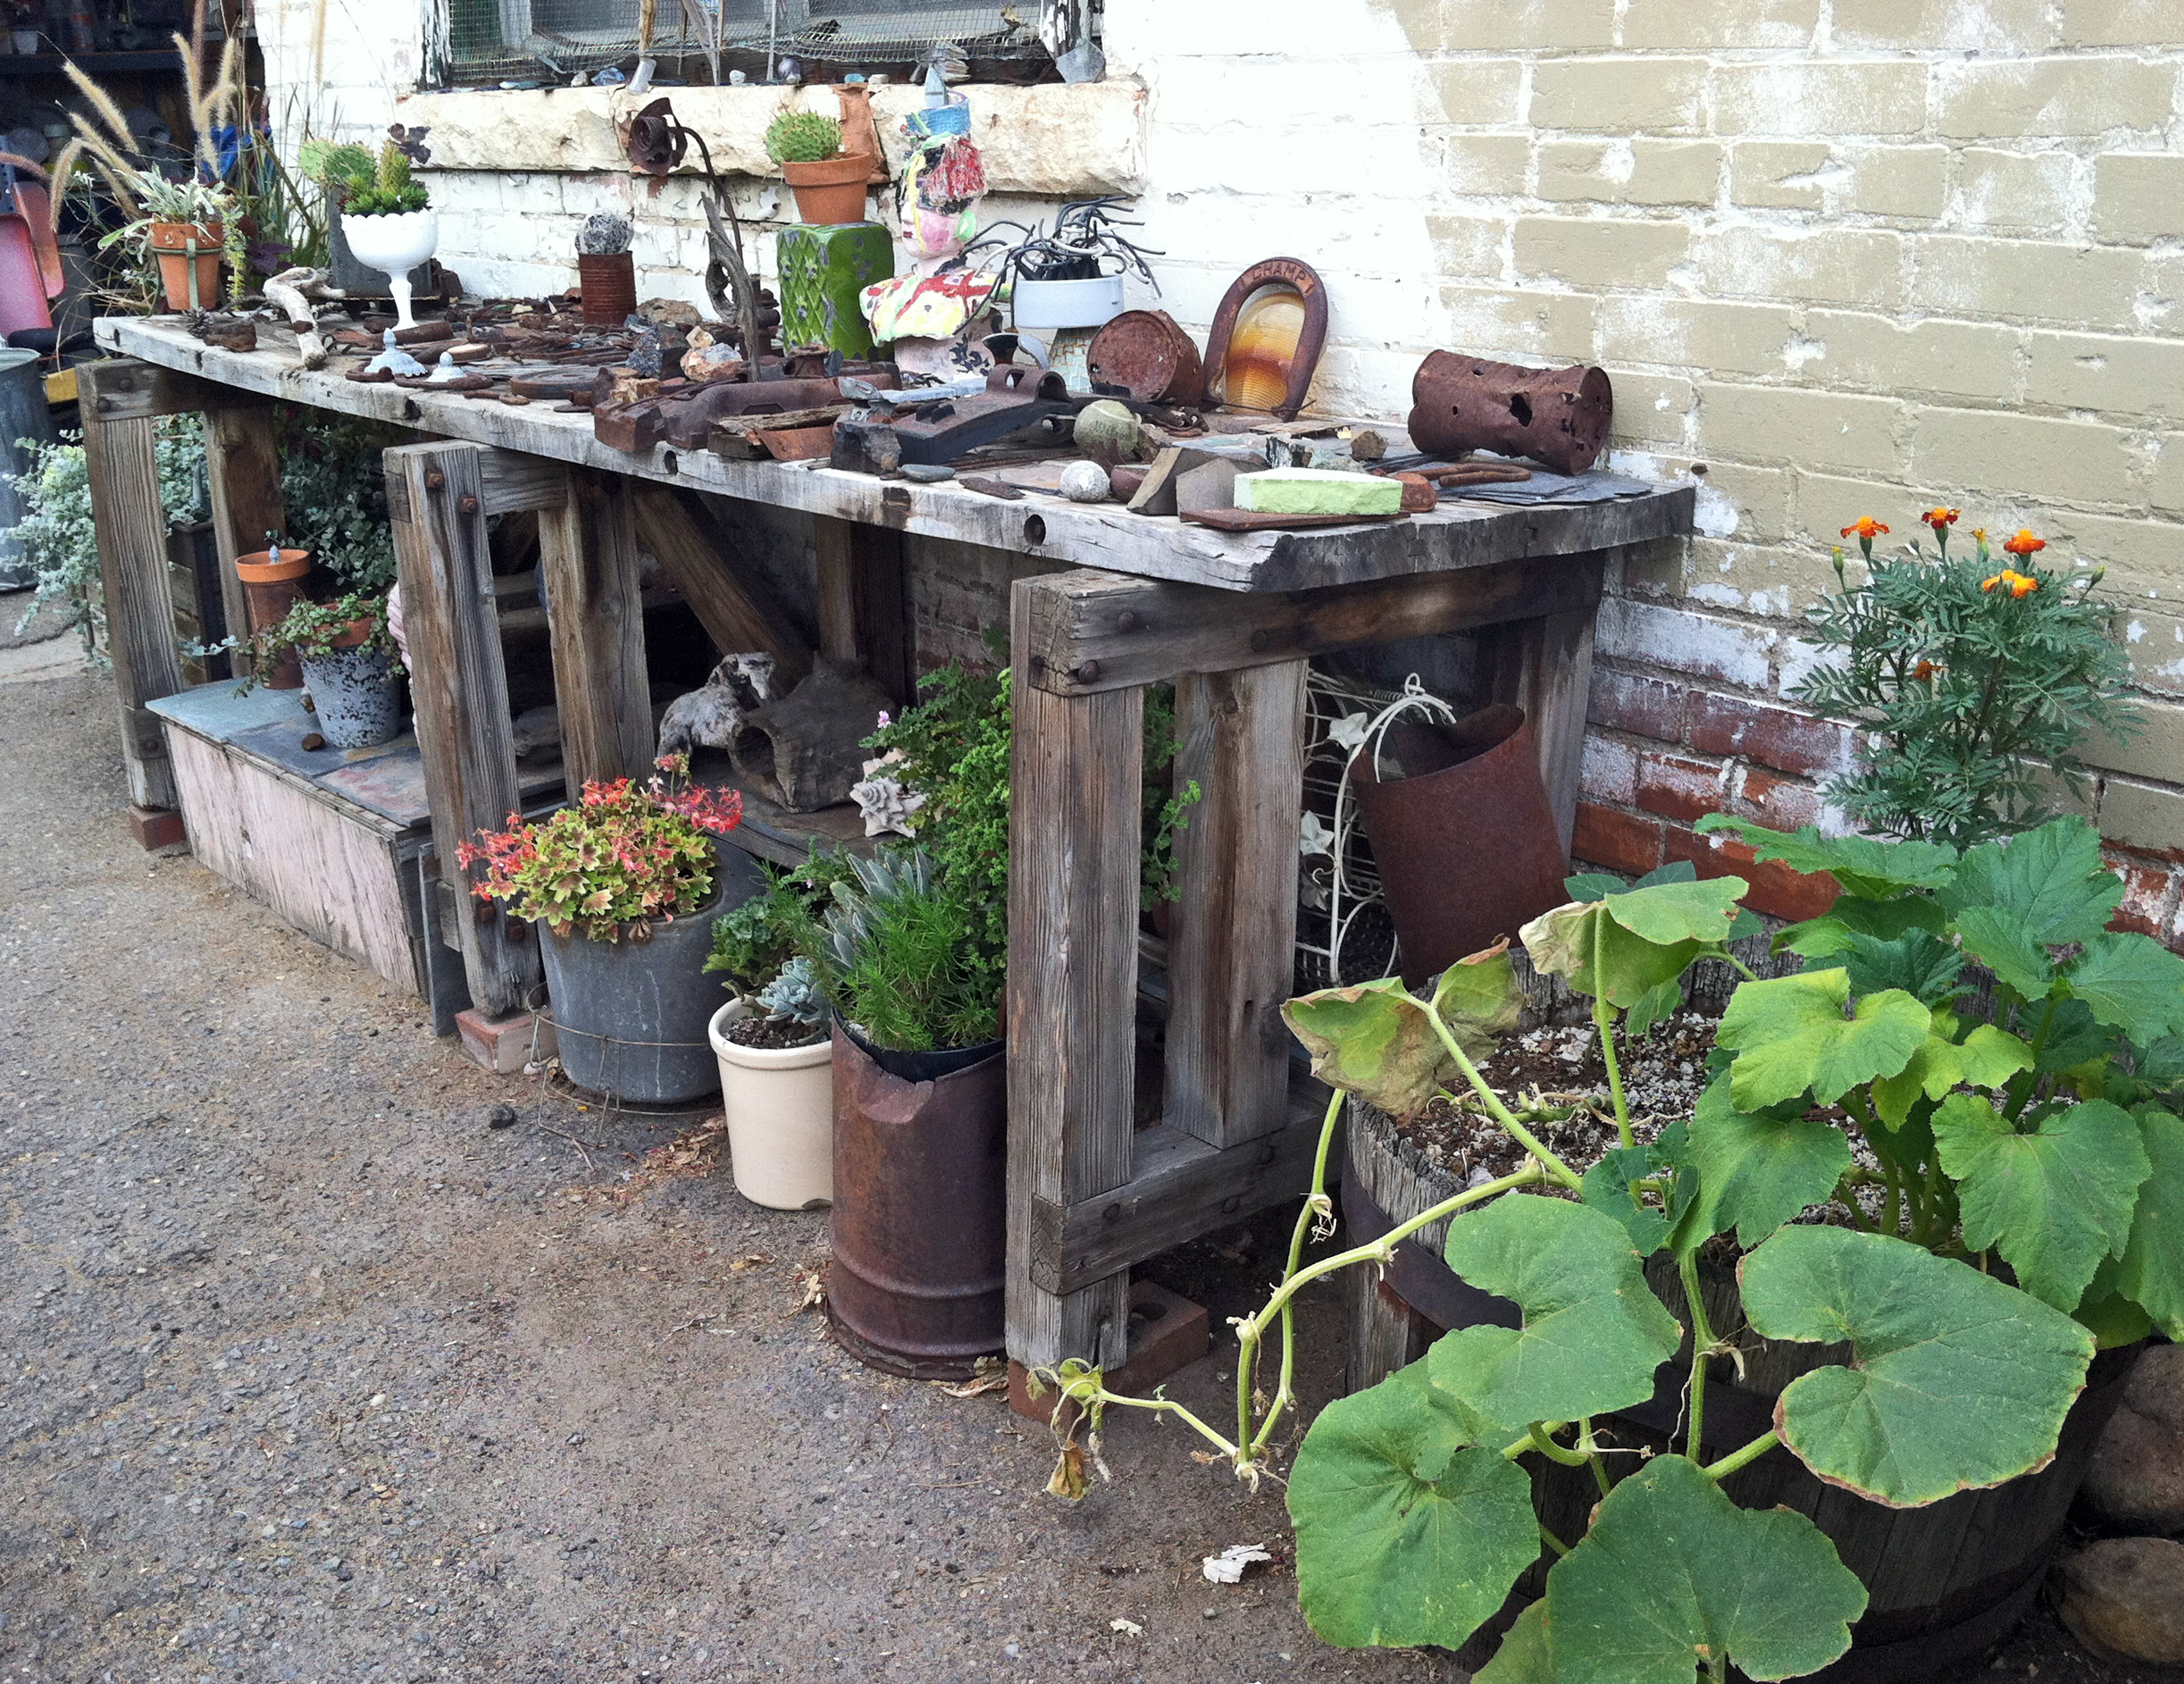 An industrial found object garden delights more fun ideas for Waste material items